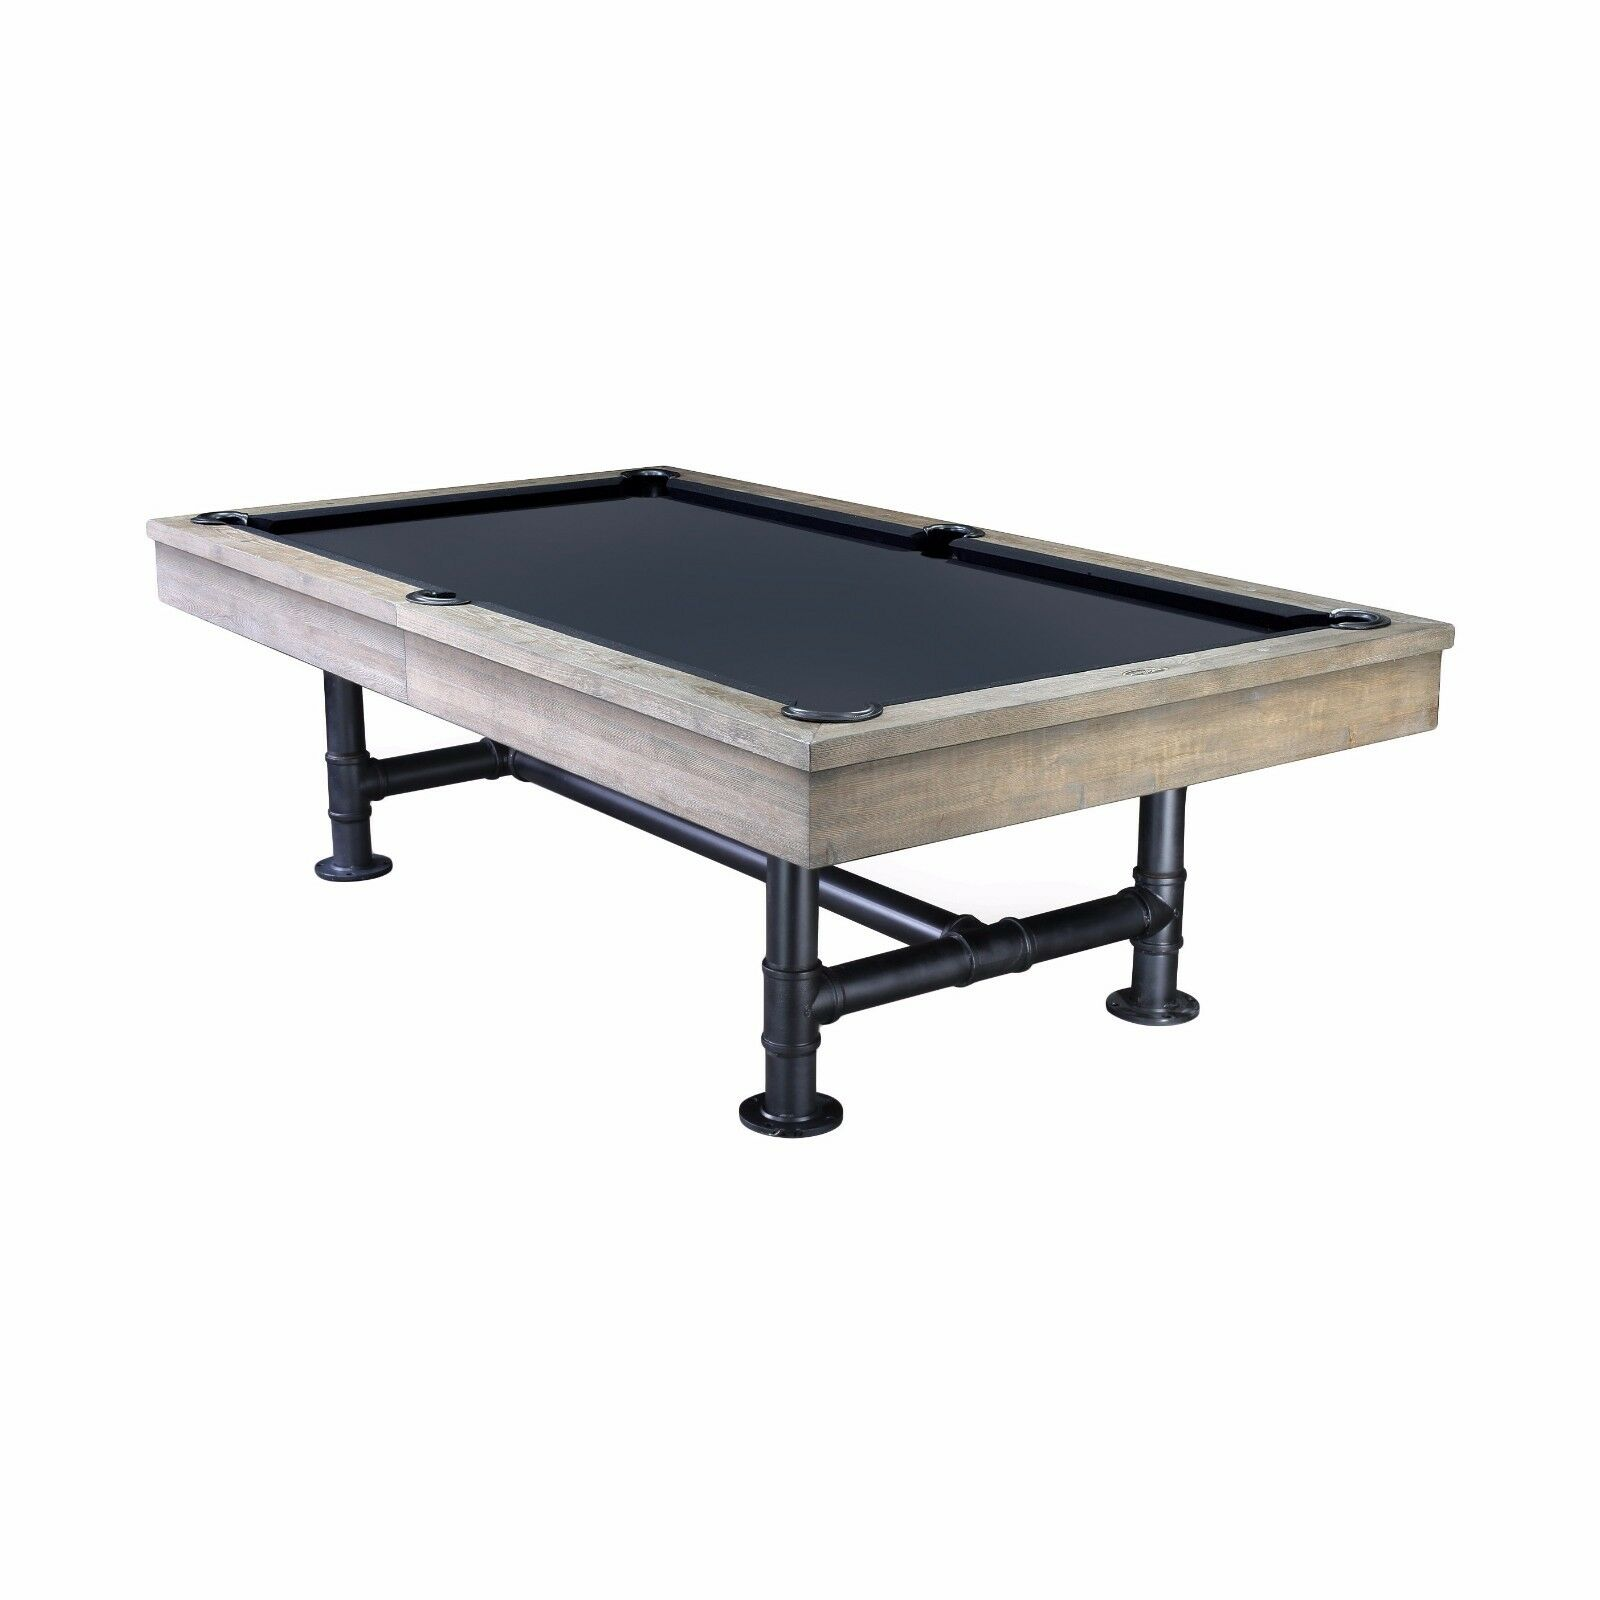 8' Bedford Slate Pool Table with Weathered Oak Finish - Dining Top Included